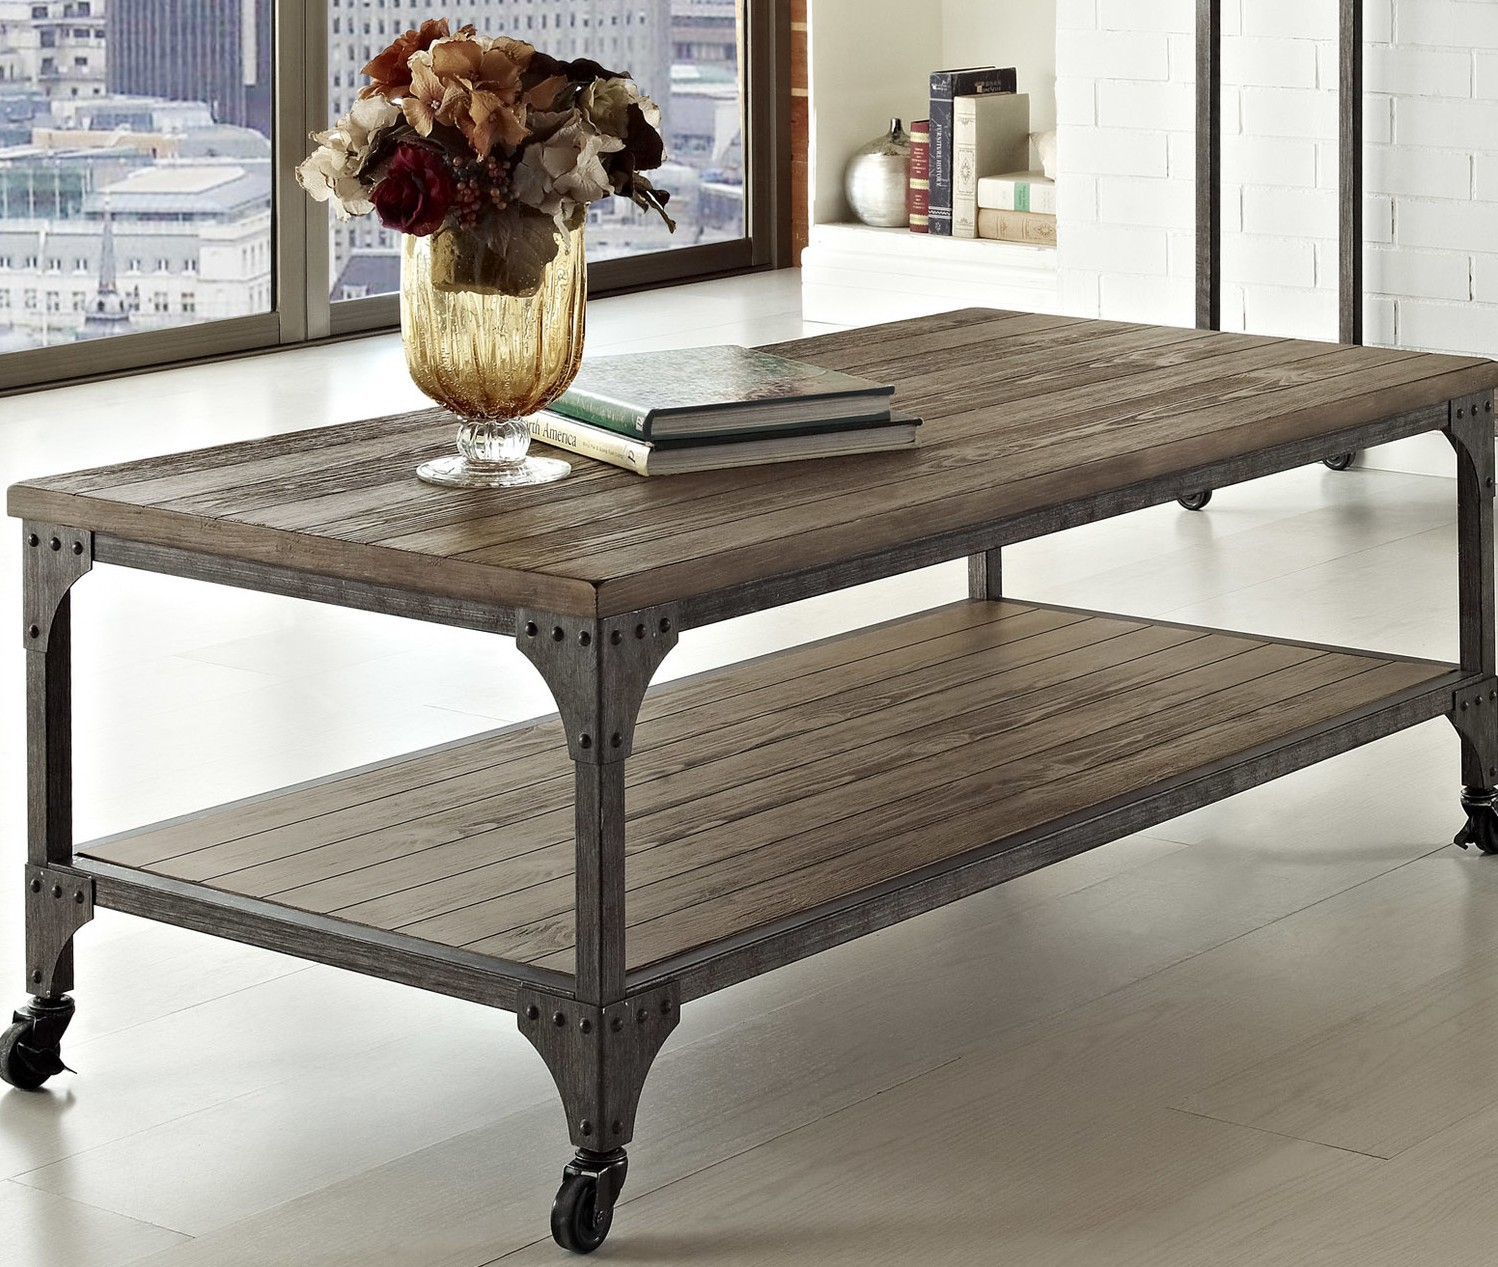 Industrial Coffee Table Images: Industrial Coffee Table Design Images Photos Pictures